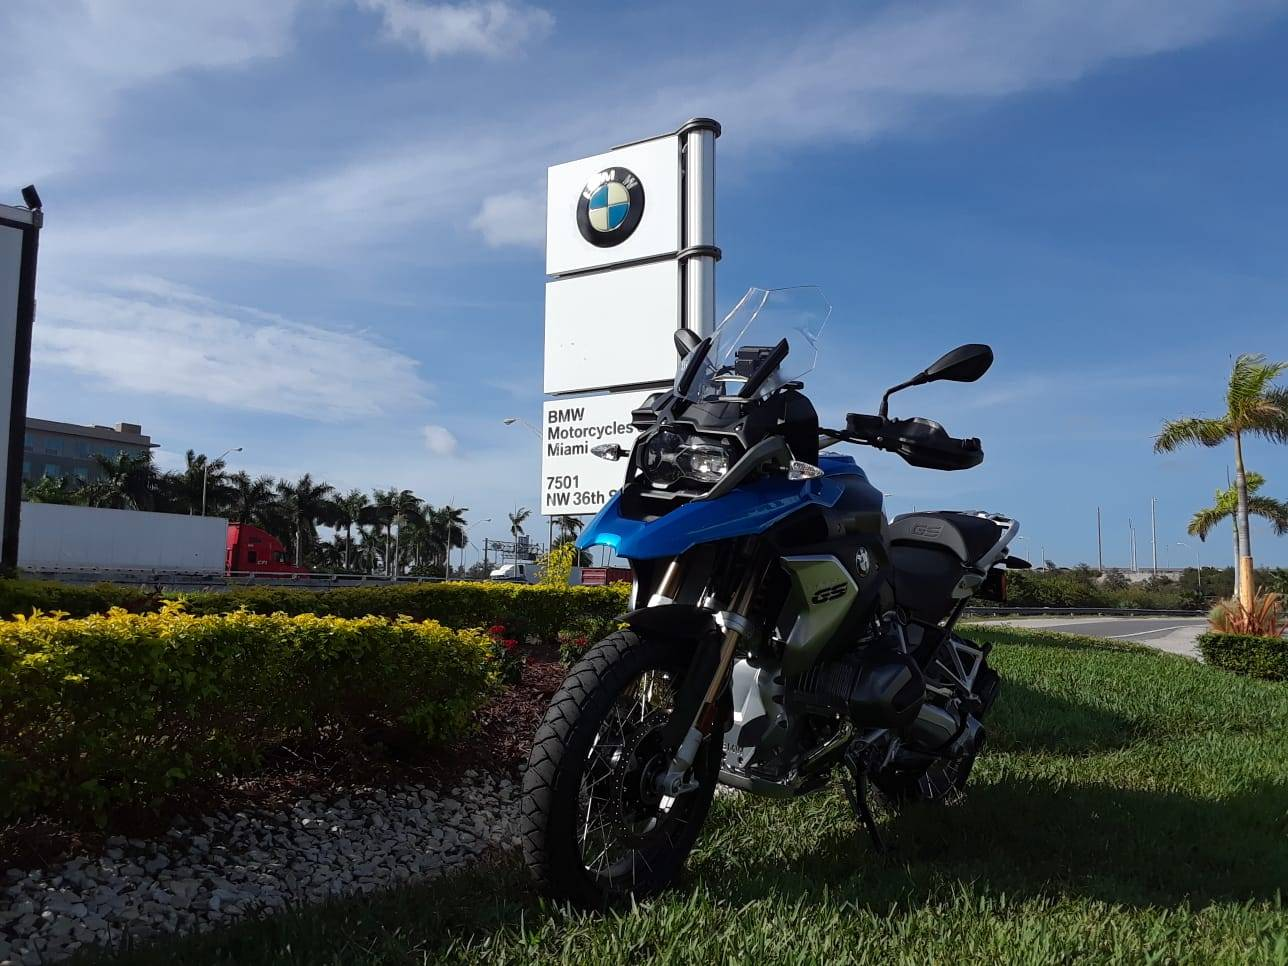 New 2019 BMW R 1250 GS for sale, New BMW R 1250GS, BMW R1250GS for sale, 1250GS, R1250GS, BMW Motorcycles of Miami, Motorcycles of Miami. Motorcycles Miami - Photo 3